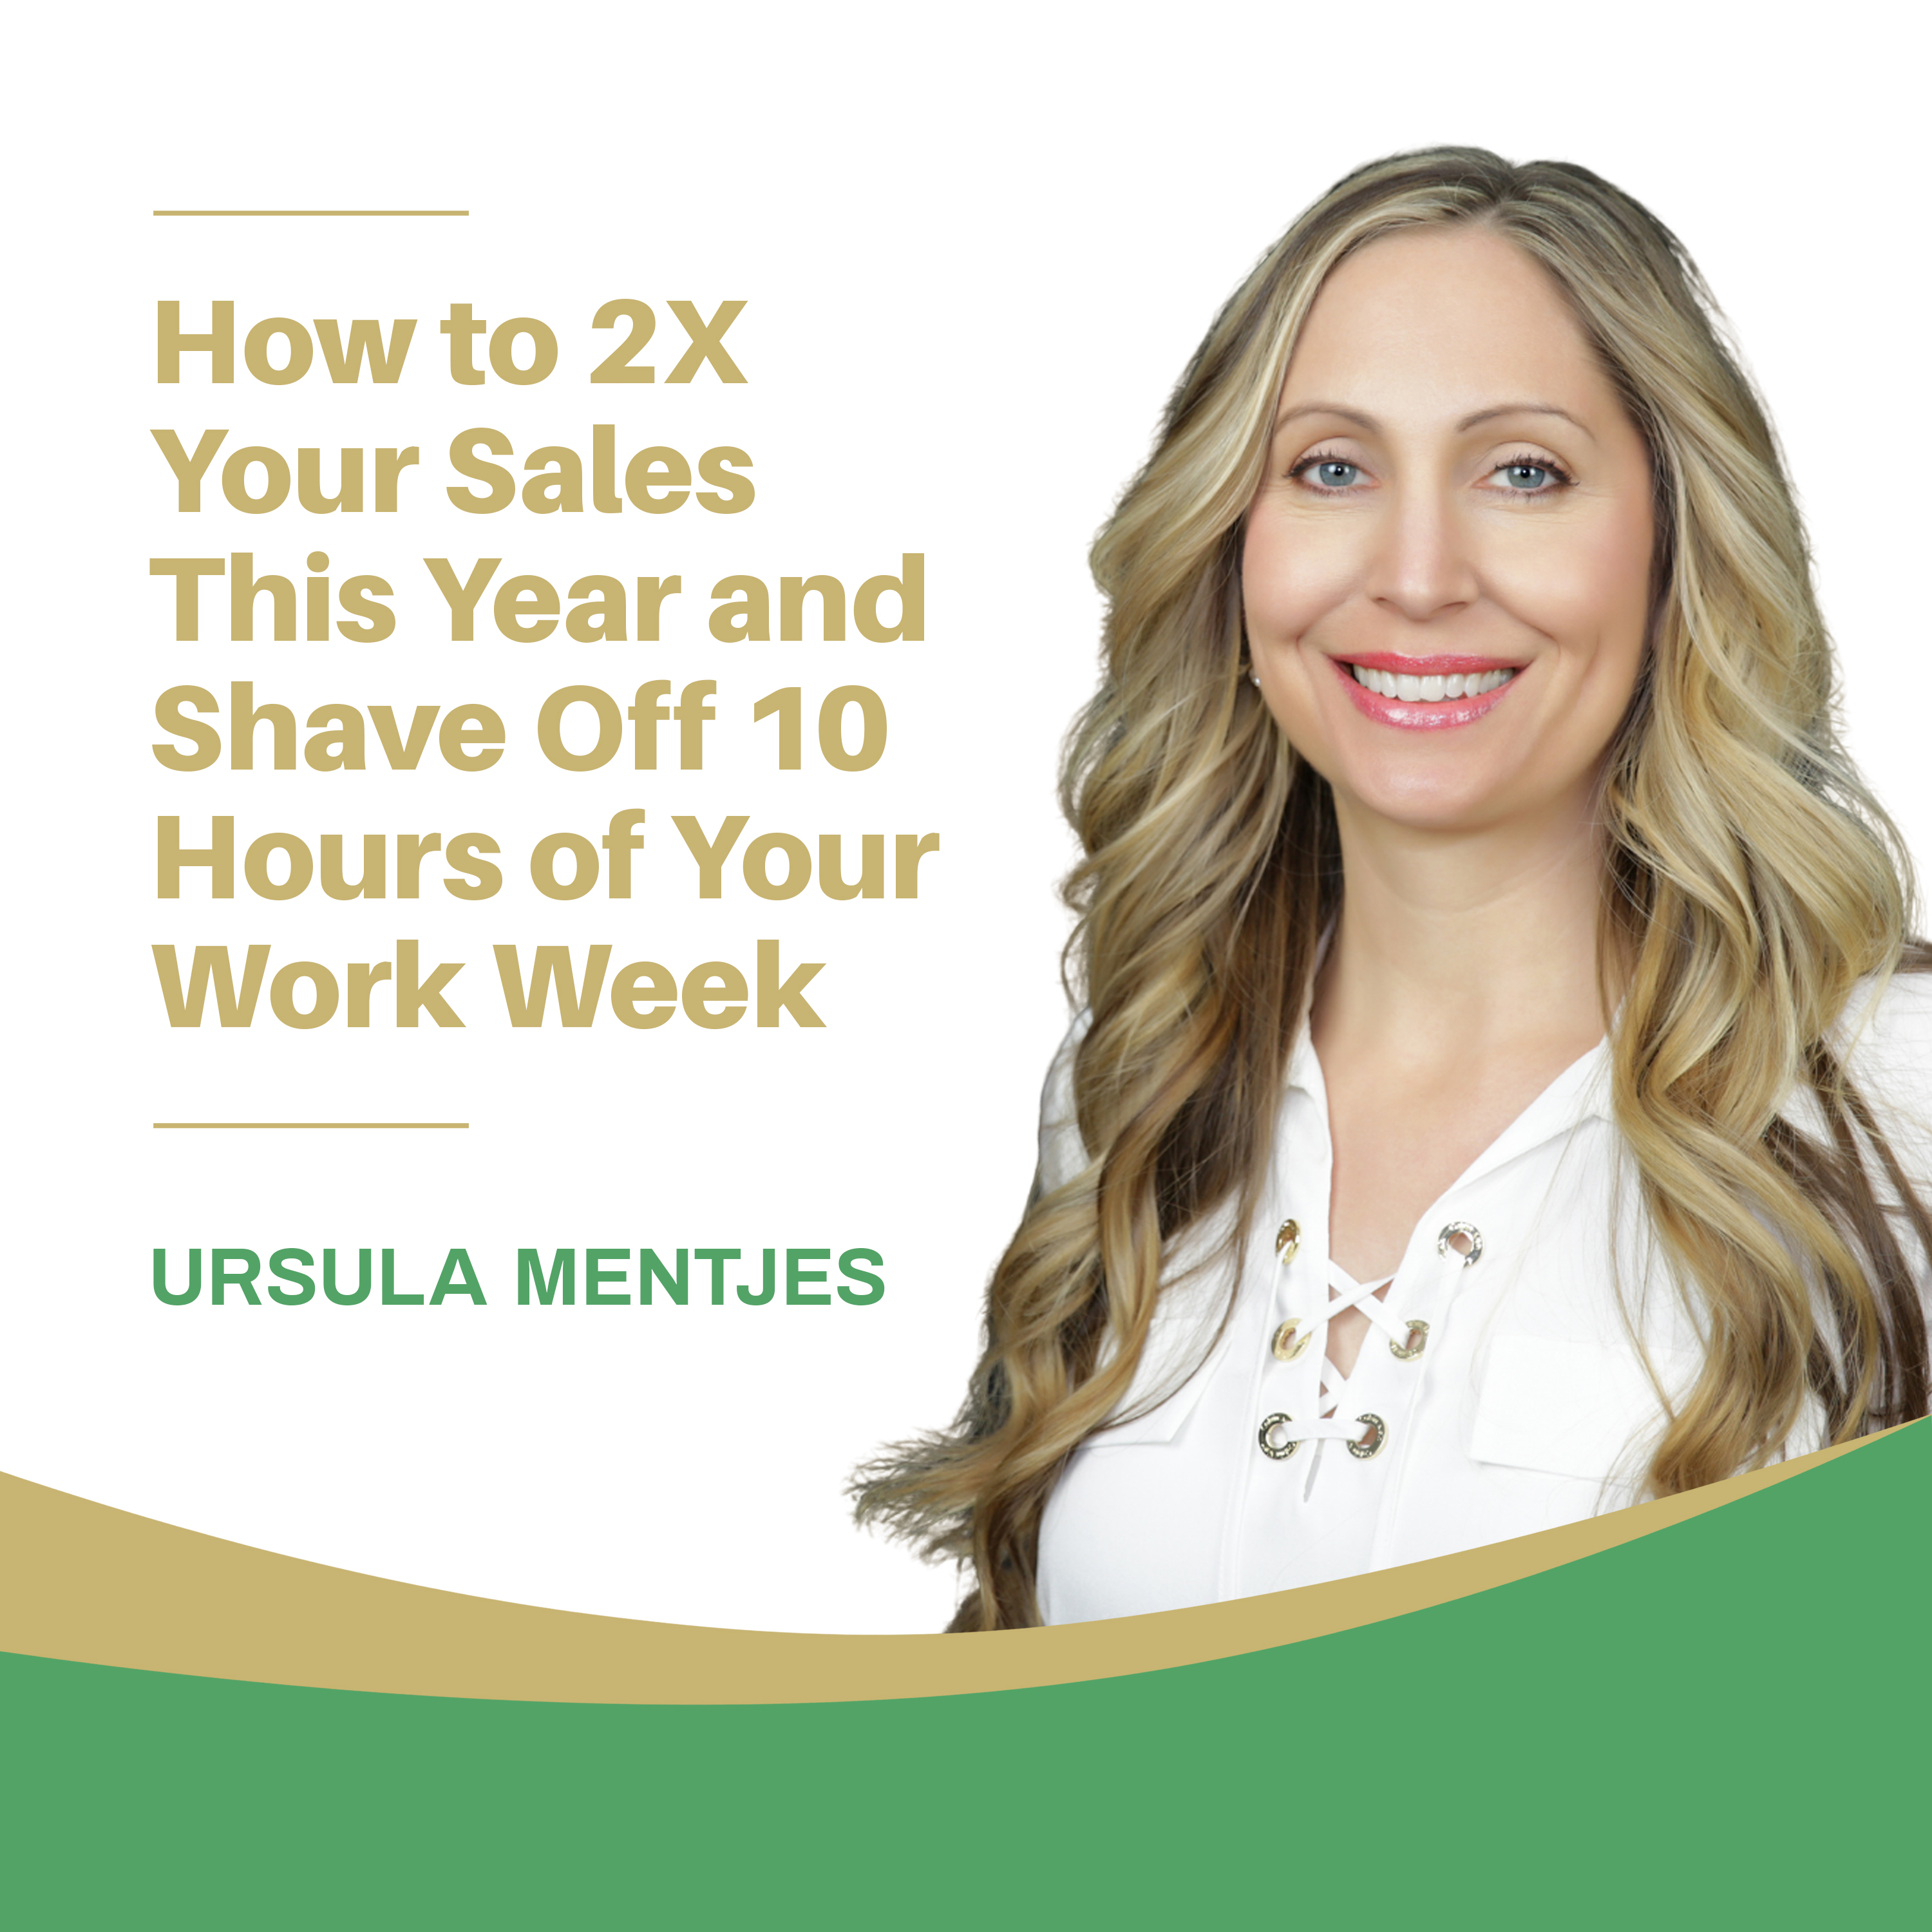 EP139: How to 2X Your Sales This Year and Shave Off 10 Hours of Your Work Week